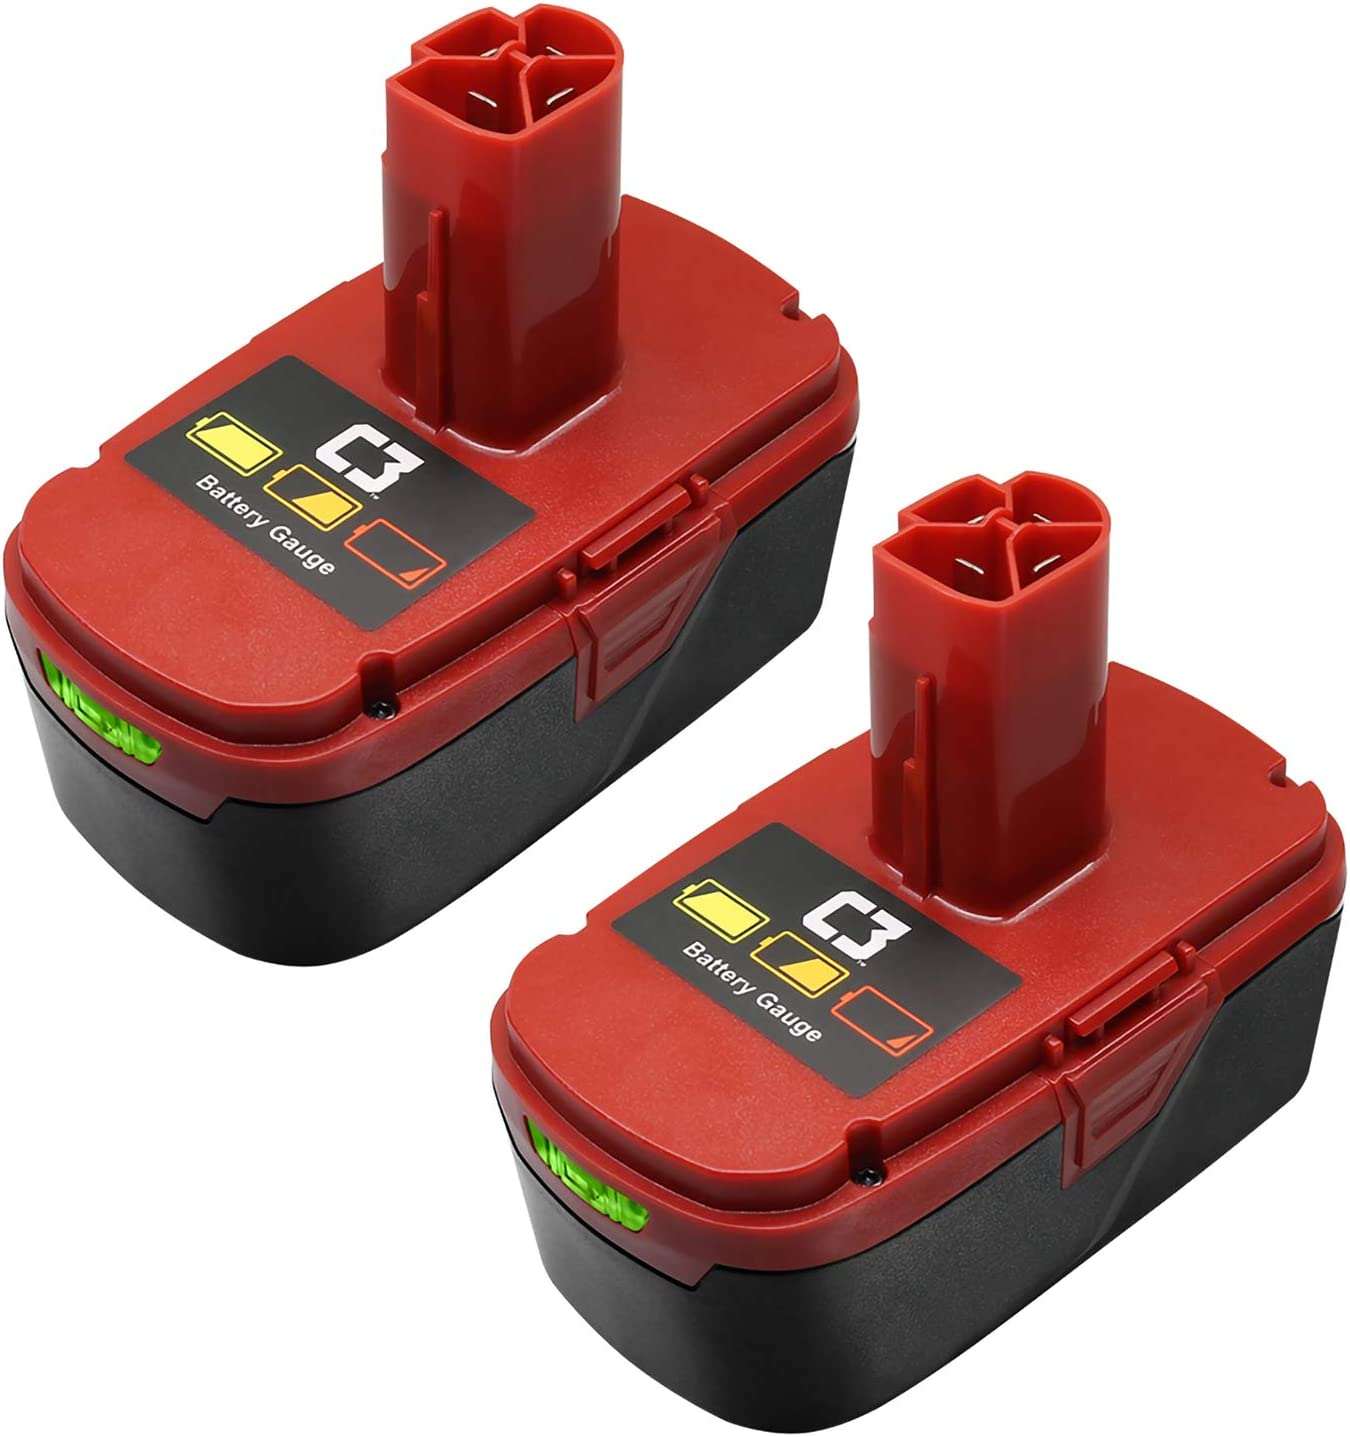 2 Pack 6.0Ah Lithium-ion shipfree Replacement Craftsman Batteries Ranking TOP4 for